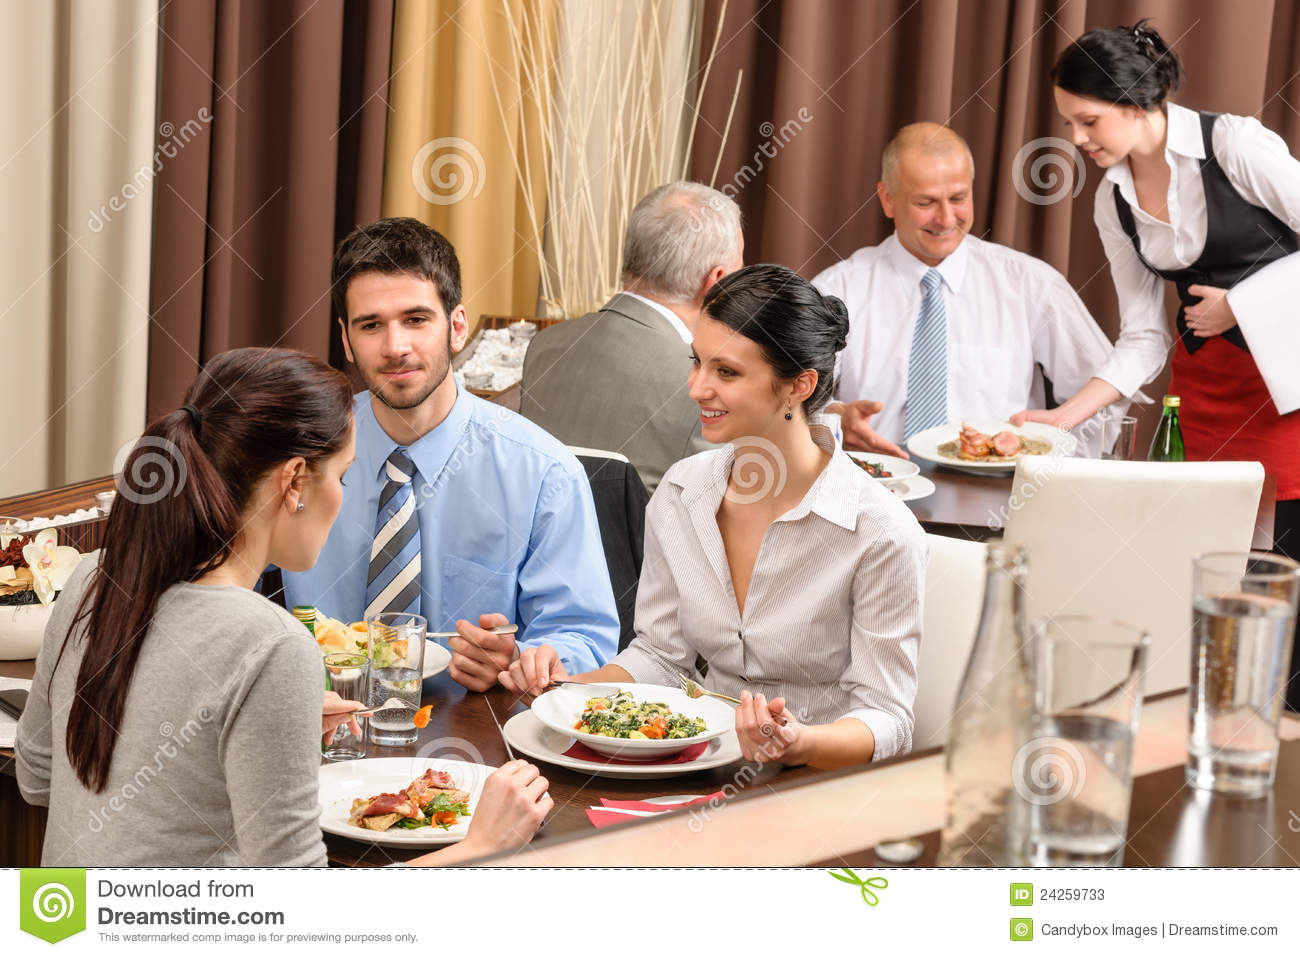 Business Lunch Restaurant People Eating Meal Stock Image ...